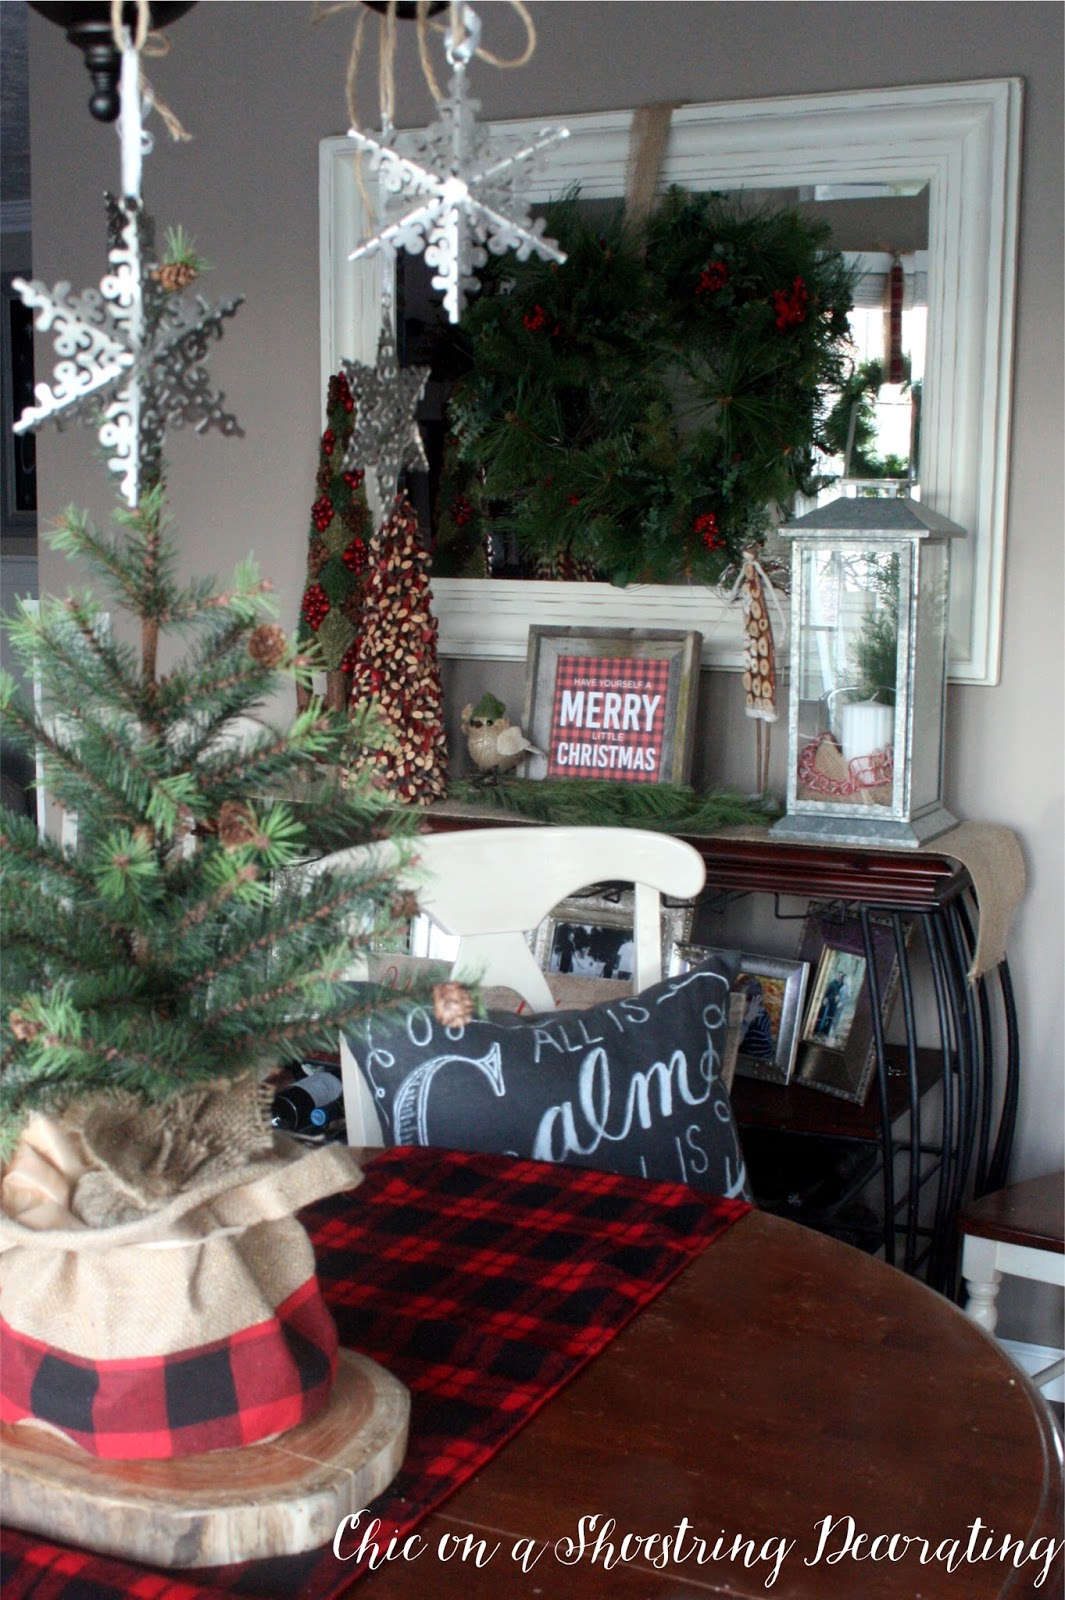 Chic on a shoestring decorating farmhouse christmas decor